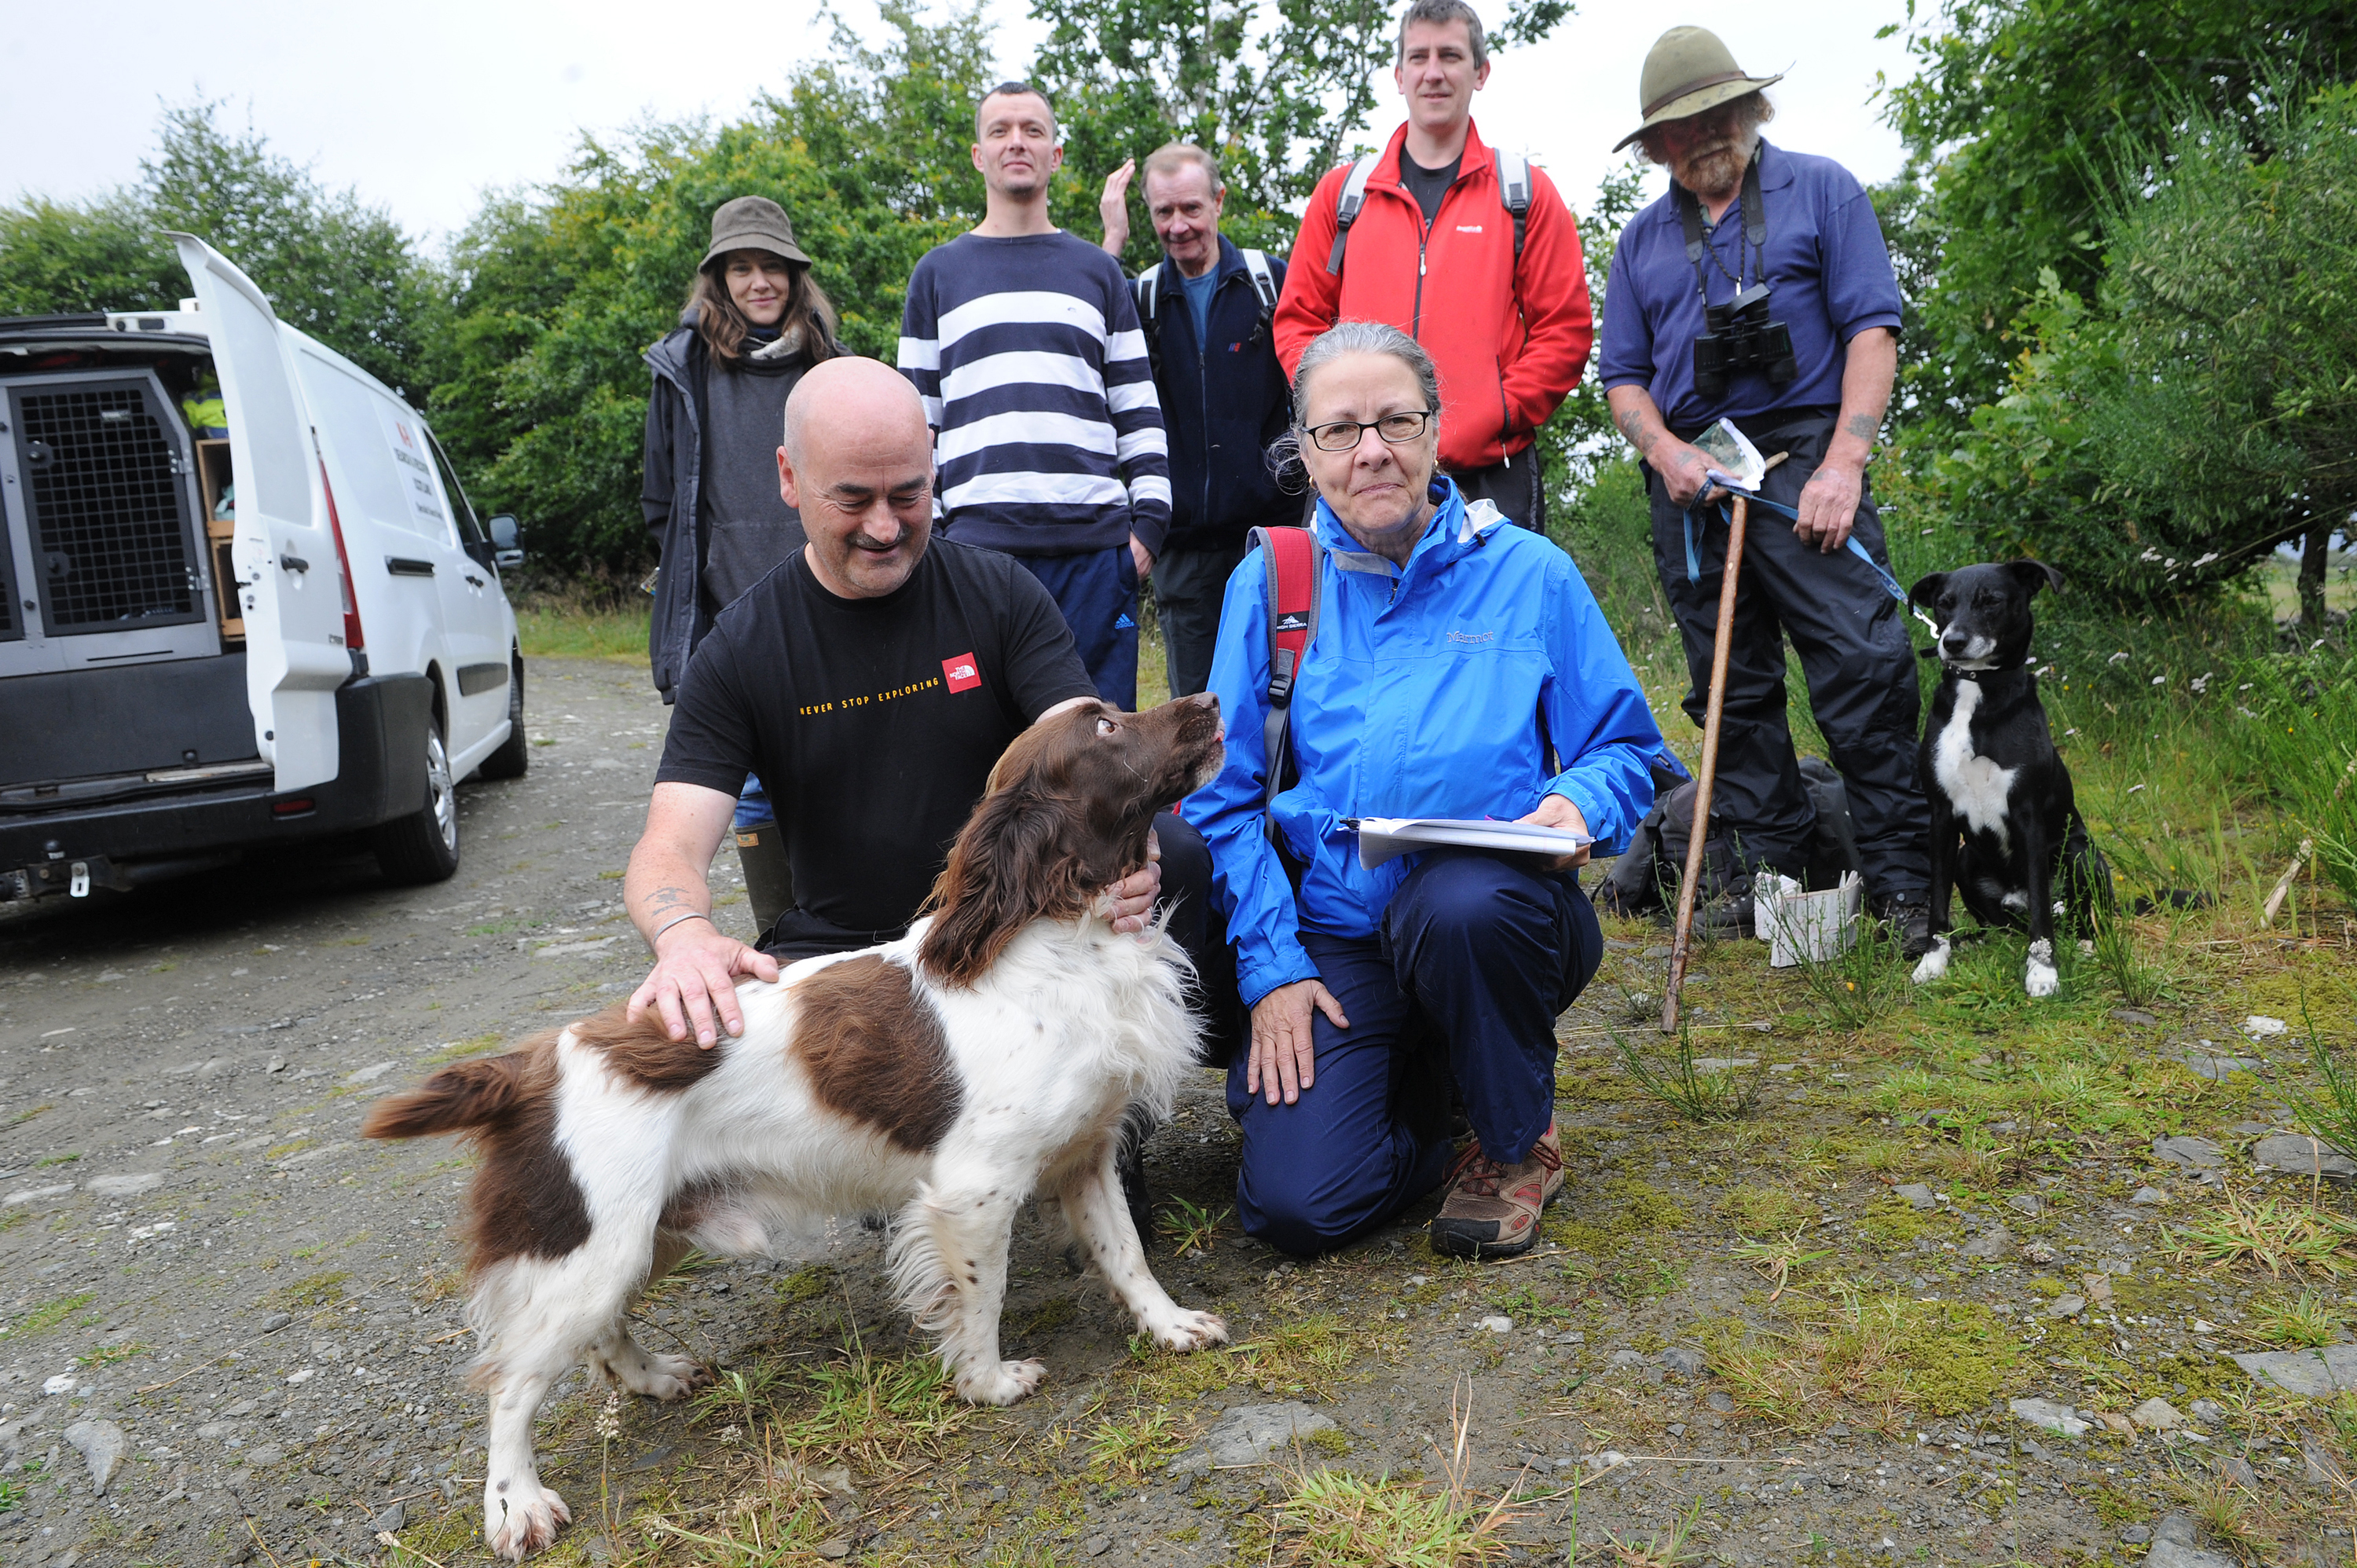 15.08.15 - pictured at the start of the Loch Hoil Trail, Aberfeldy (Crieff Road end) are some of the community who turned out to search for missing American tourist Susan McLean - back l to r - Brooke Baker, Steven Ferguson, Alistair Cameron, Gary Forsyth and Mitch Bain with 'Bing' - front - Iain Marshall (K9 Search and Recovery) with 'Barra' who is the only submerged cadaver search dog in Scotland and Susan's friend Lorna VanderZanden who is co-ordinating the continuing searches